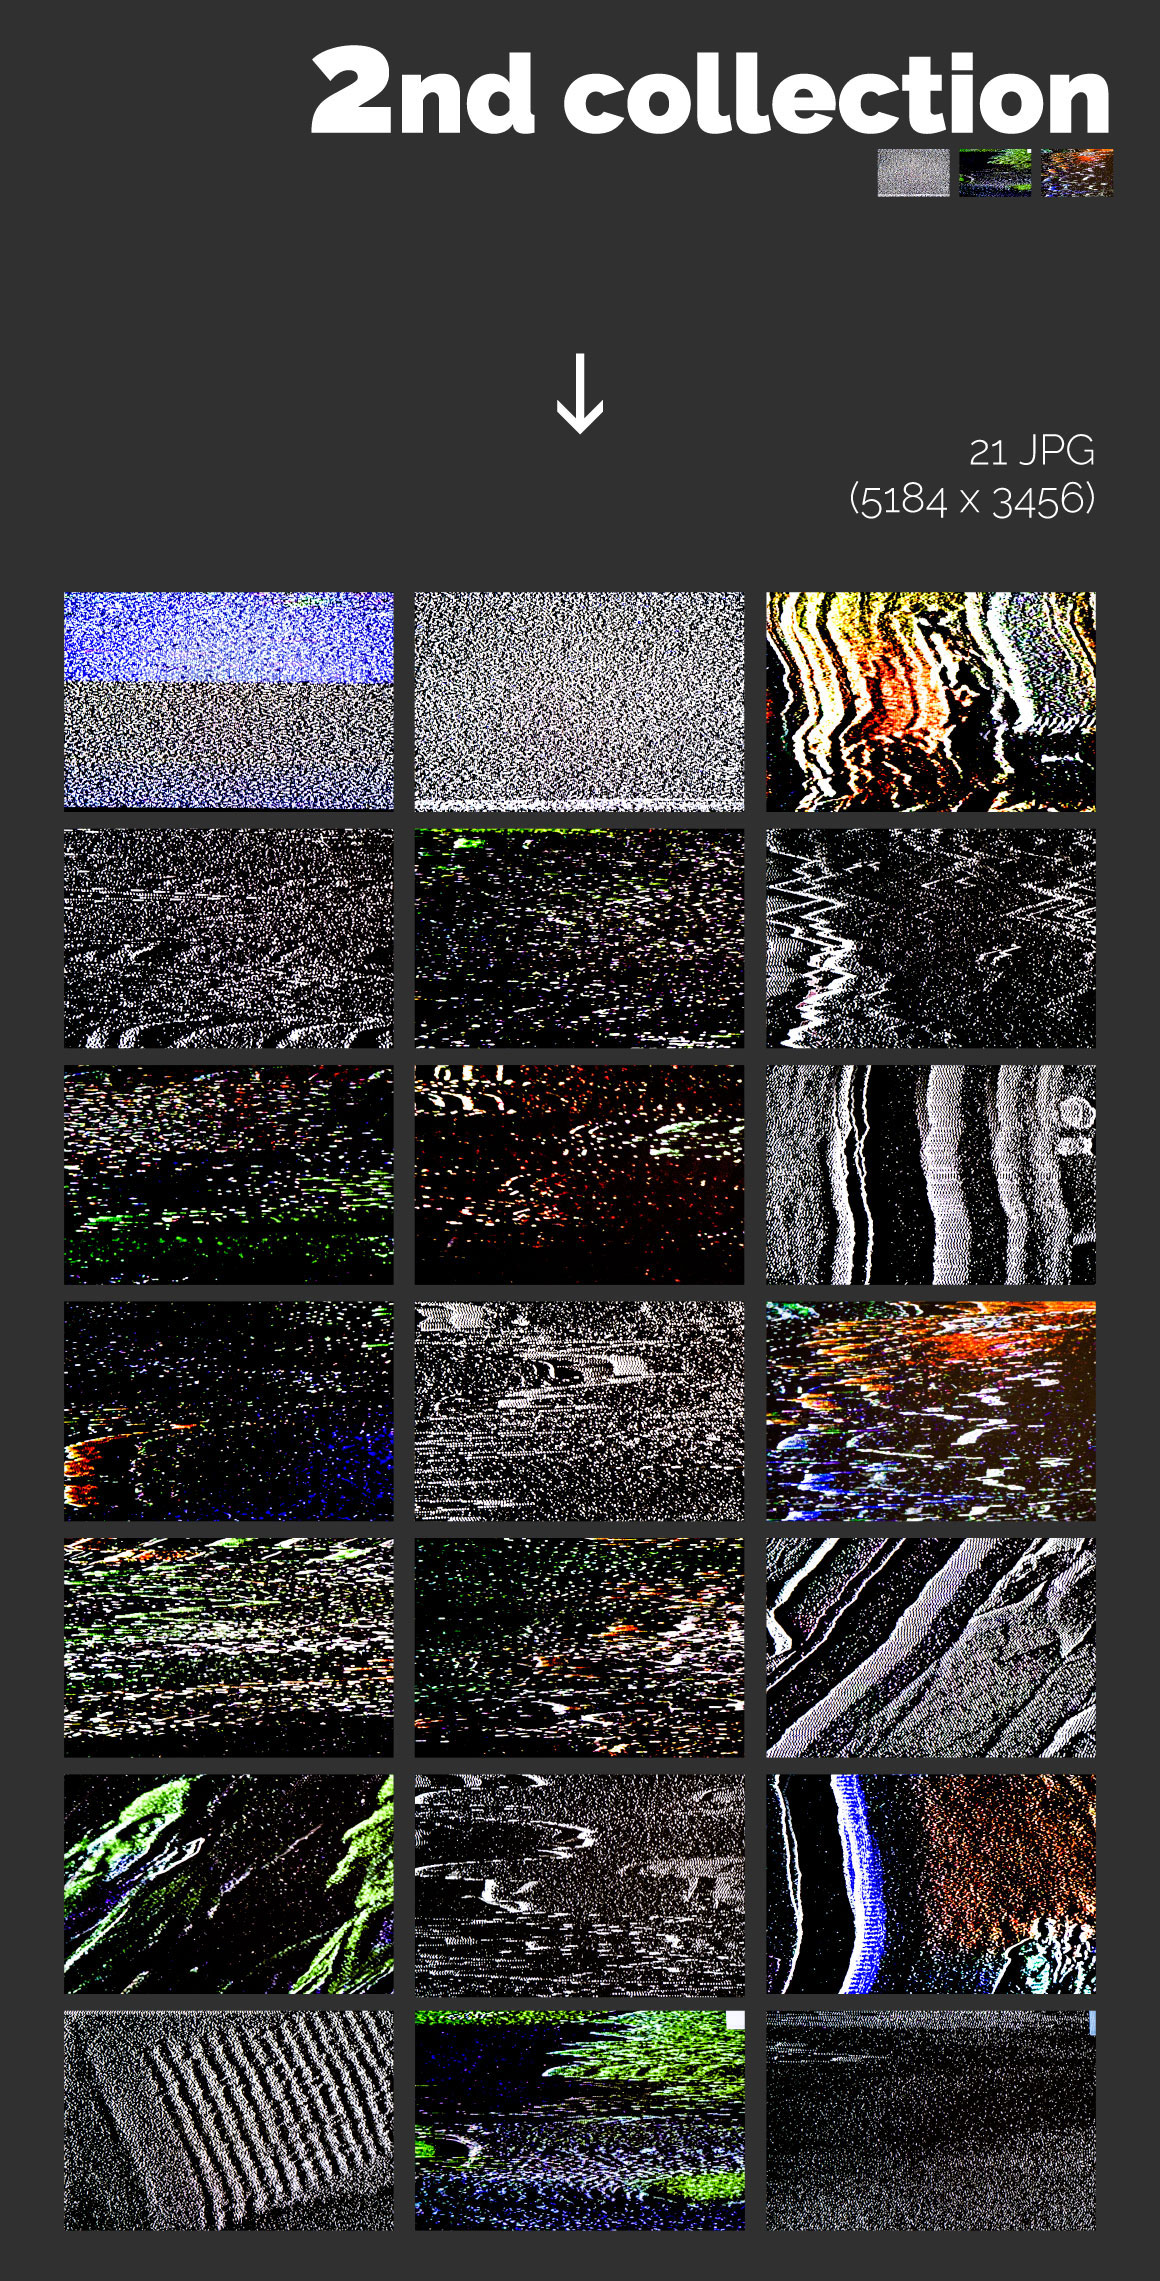 60 Abstract TV Glitch Textures